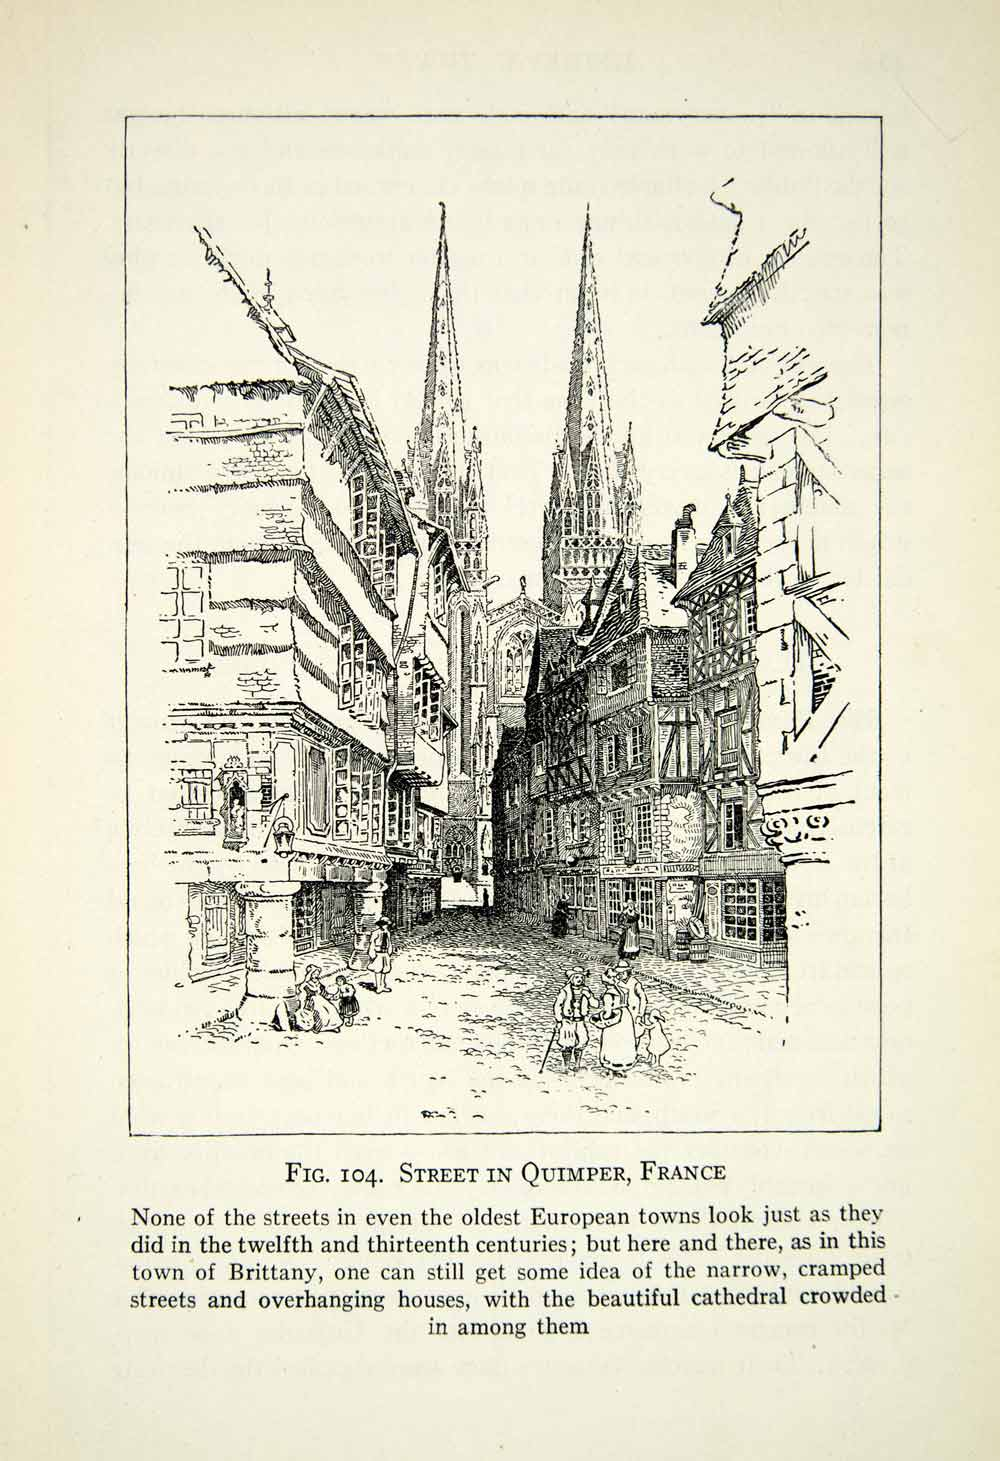 1929 Print Quimper France Streetscape Cityscape Art Gothic Cathedral XEBA9